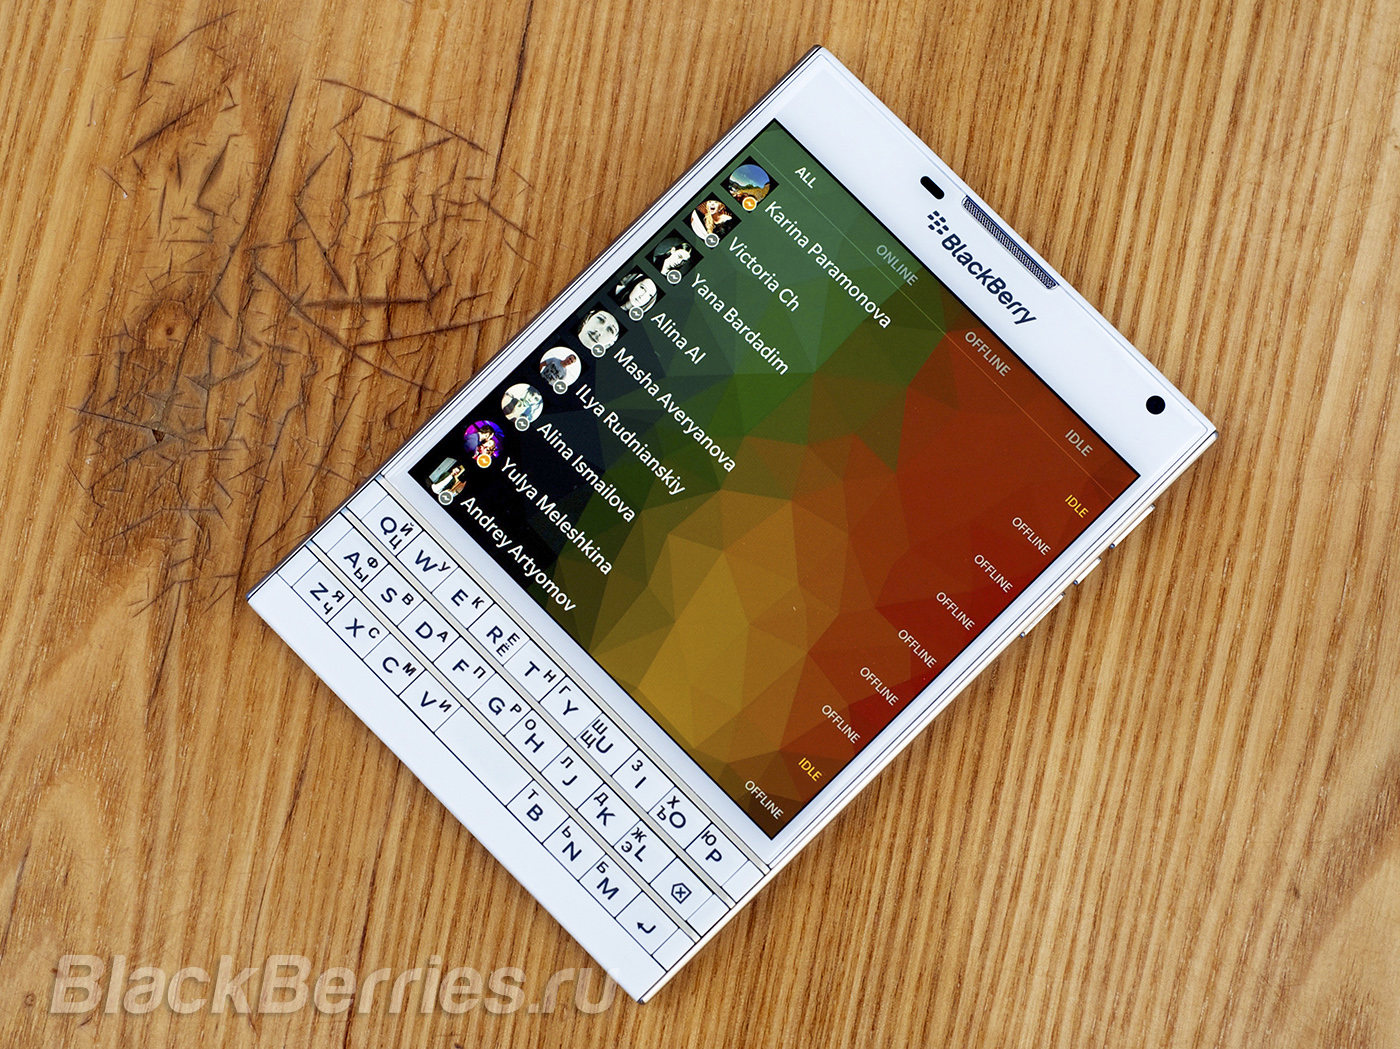 BlackBerry-Passport-20-05-02